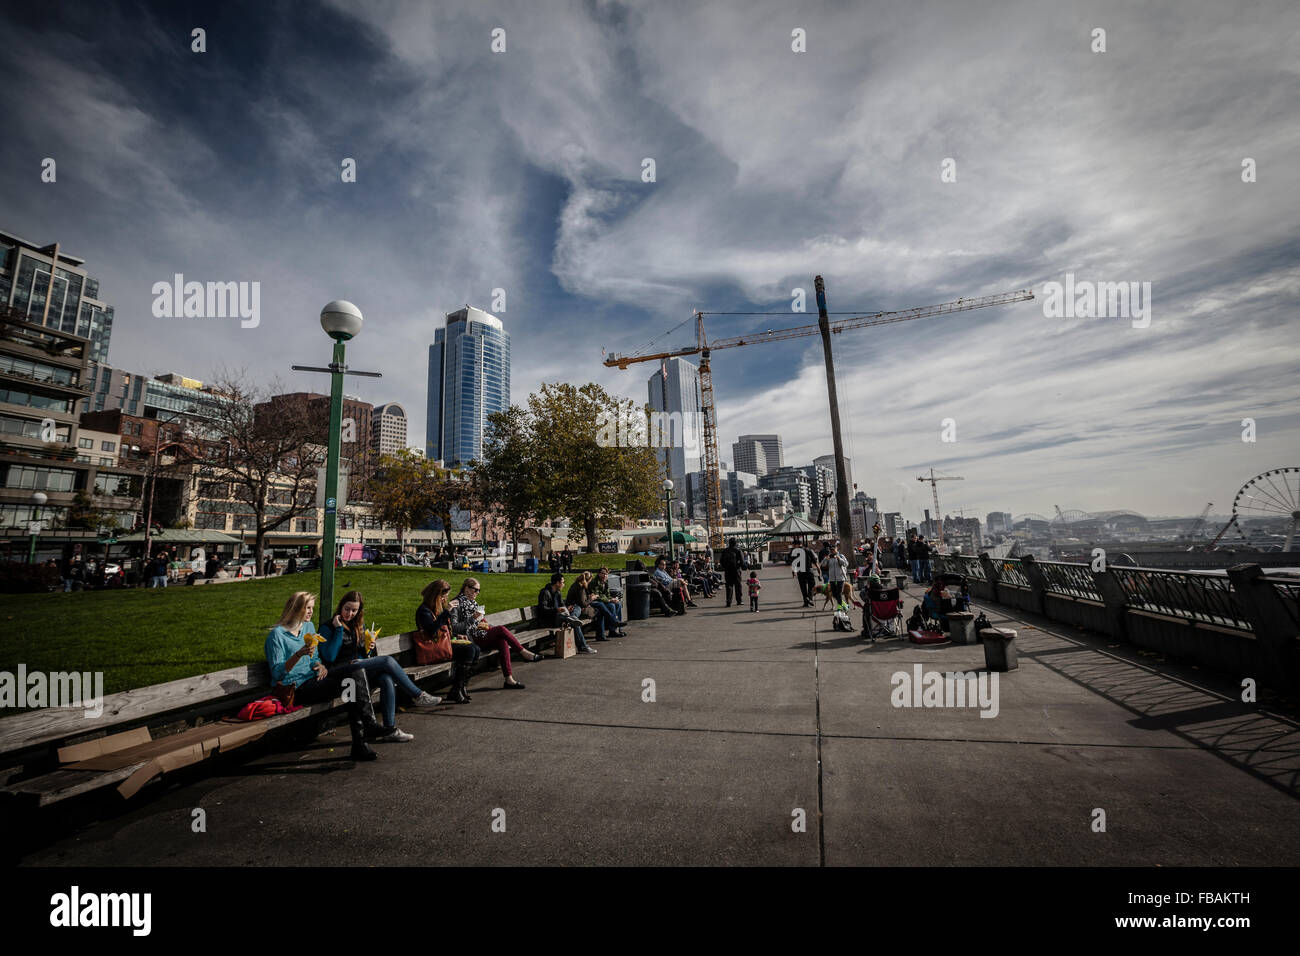 People at Victor Steinbrueck Park, Seattle, Washington state - Stock Image